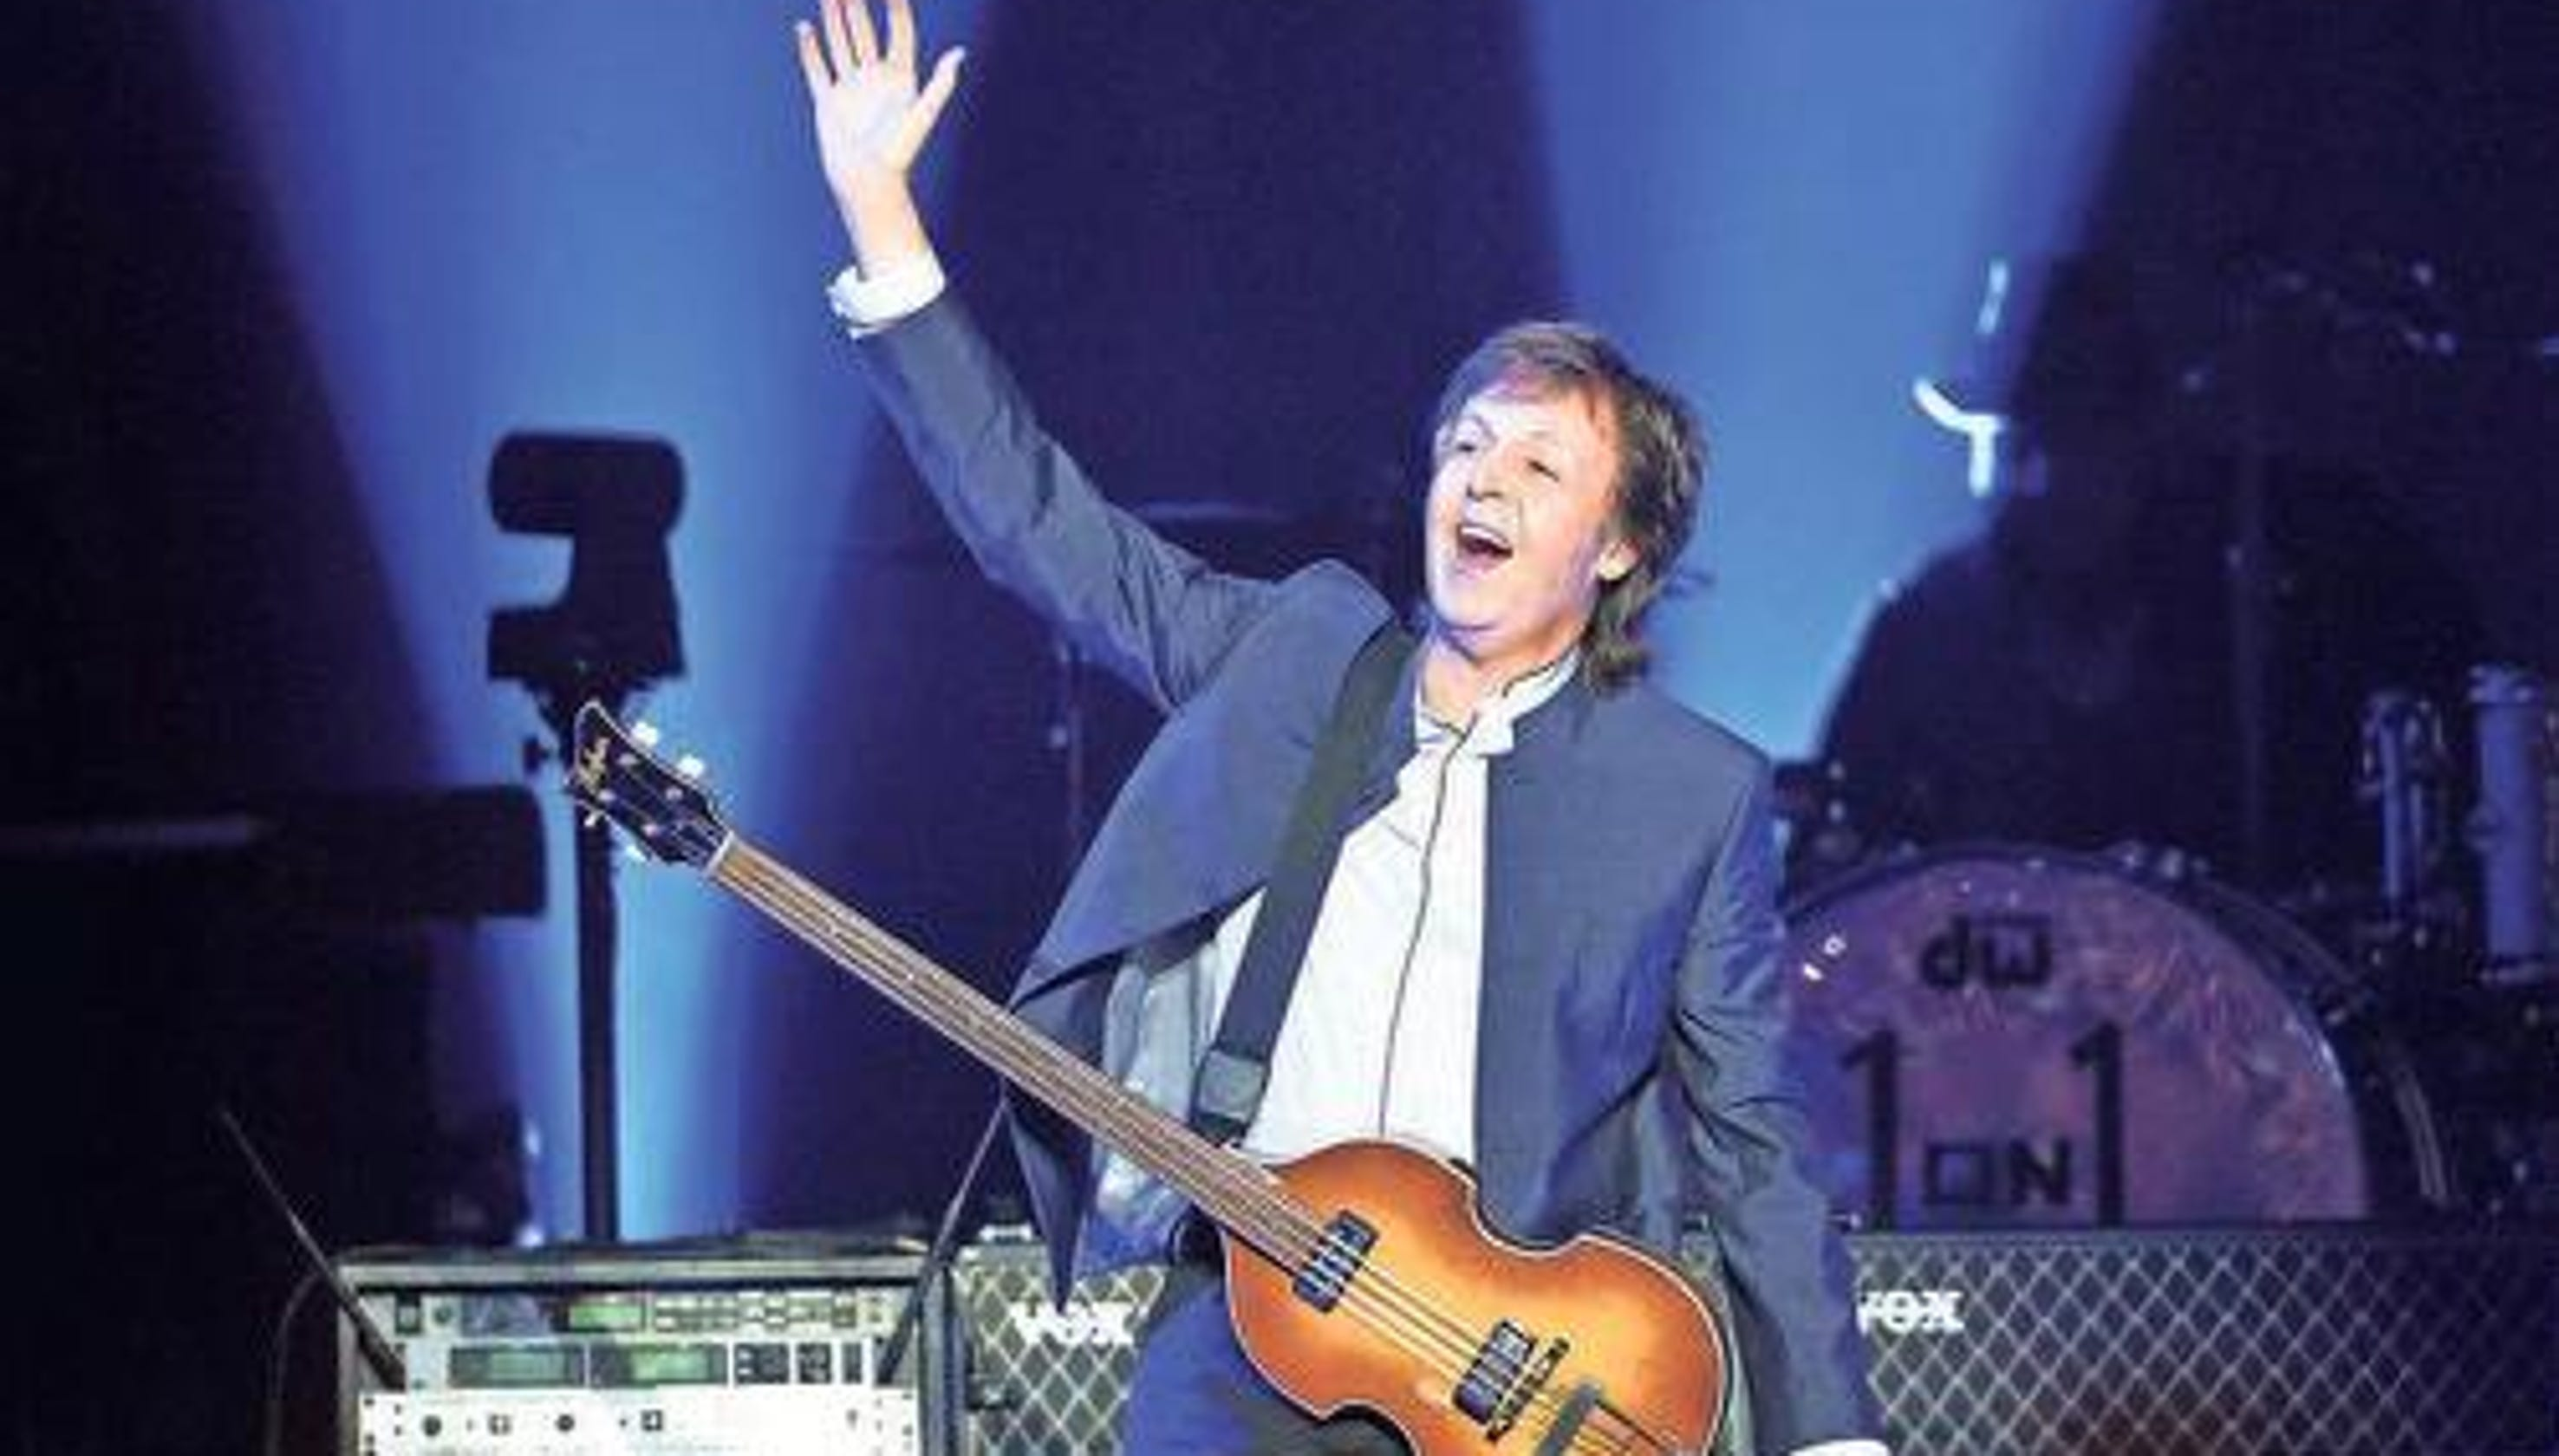 paul mccartney 39 s new album 39 egypt station 39 is another ticket to ride. Black Bedroom Furniture Sets. Home Design Ideas